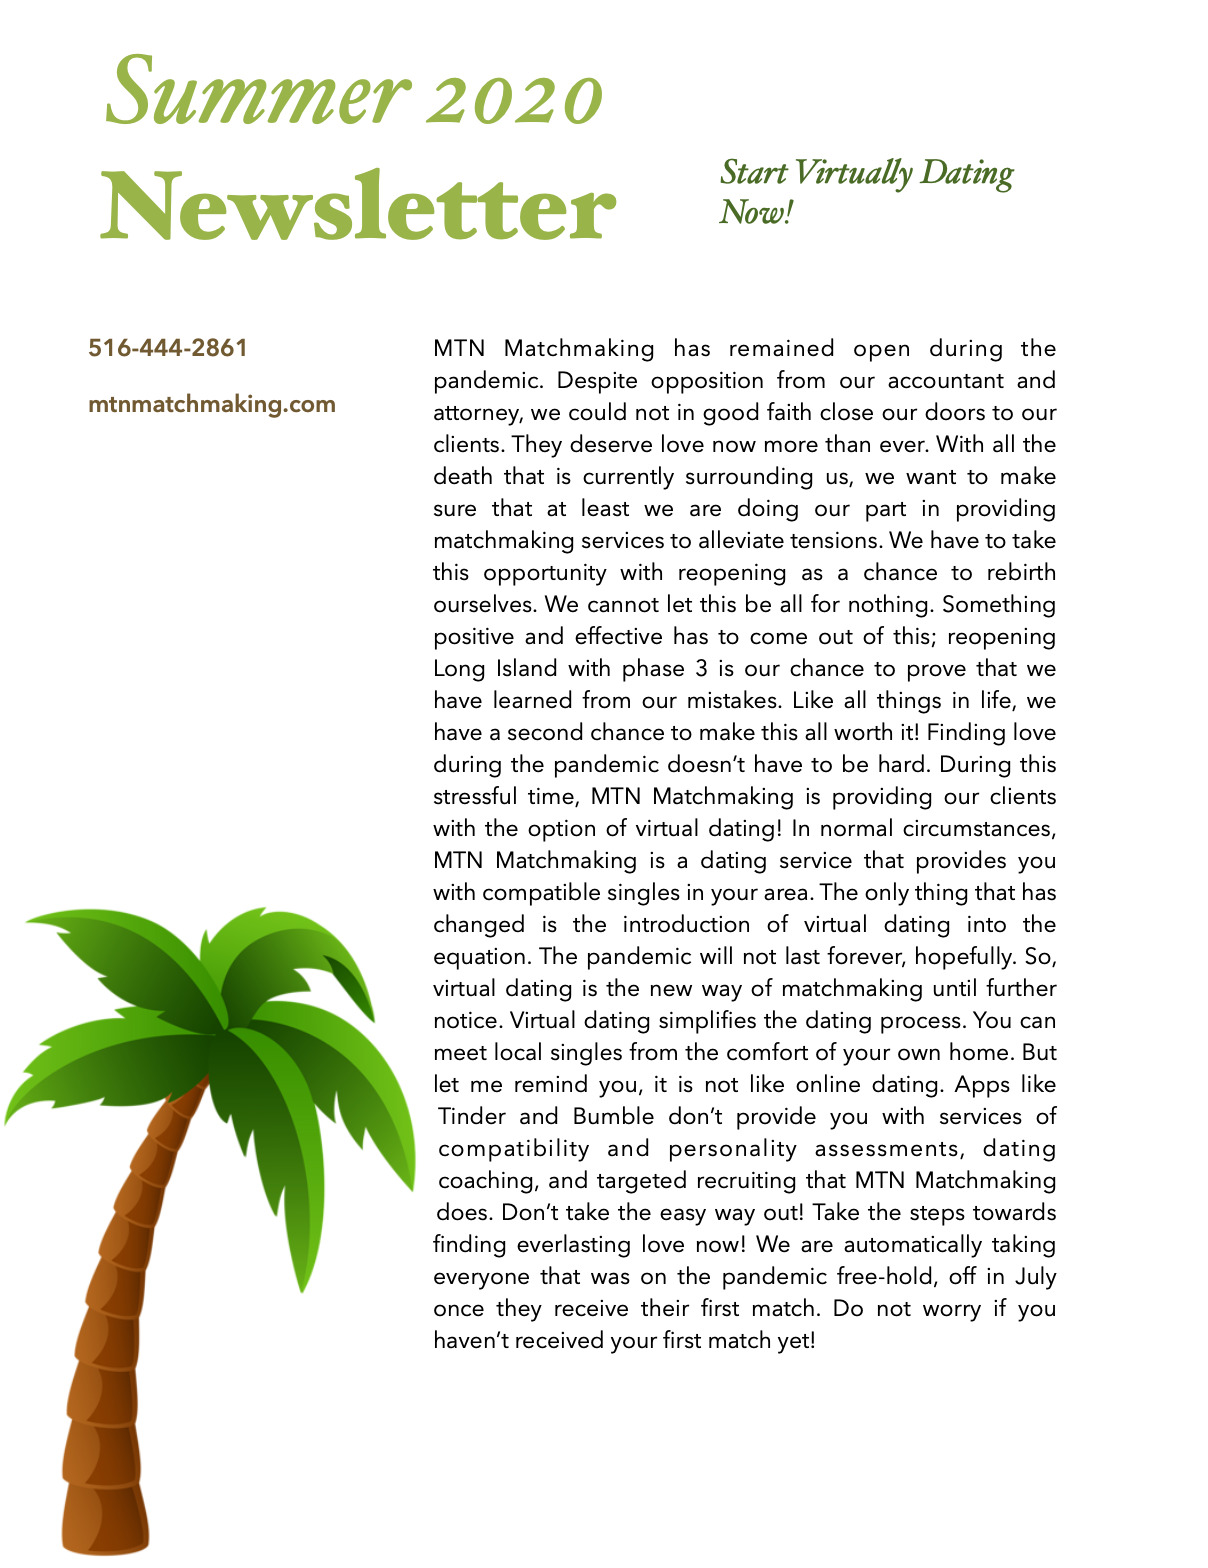 Summer 2020 Newsletter! Now Available!